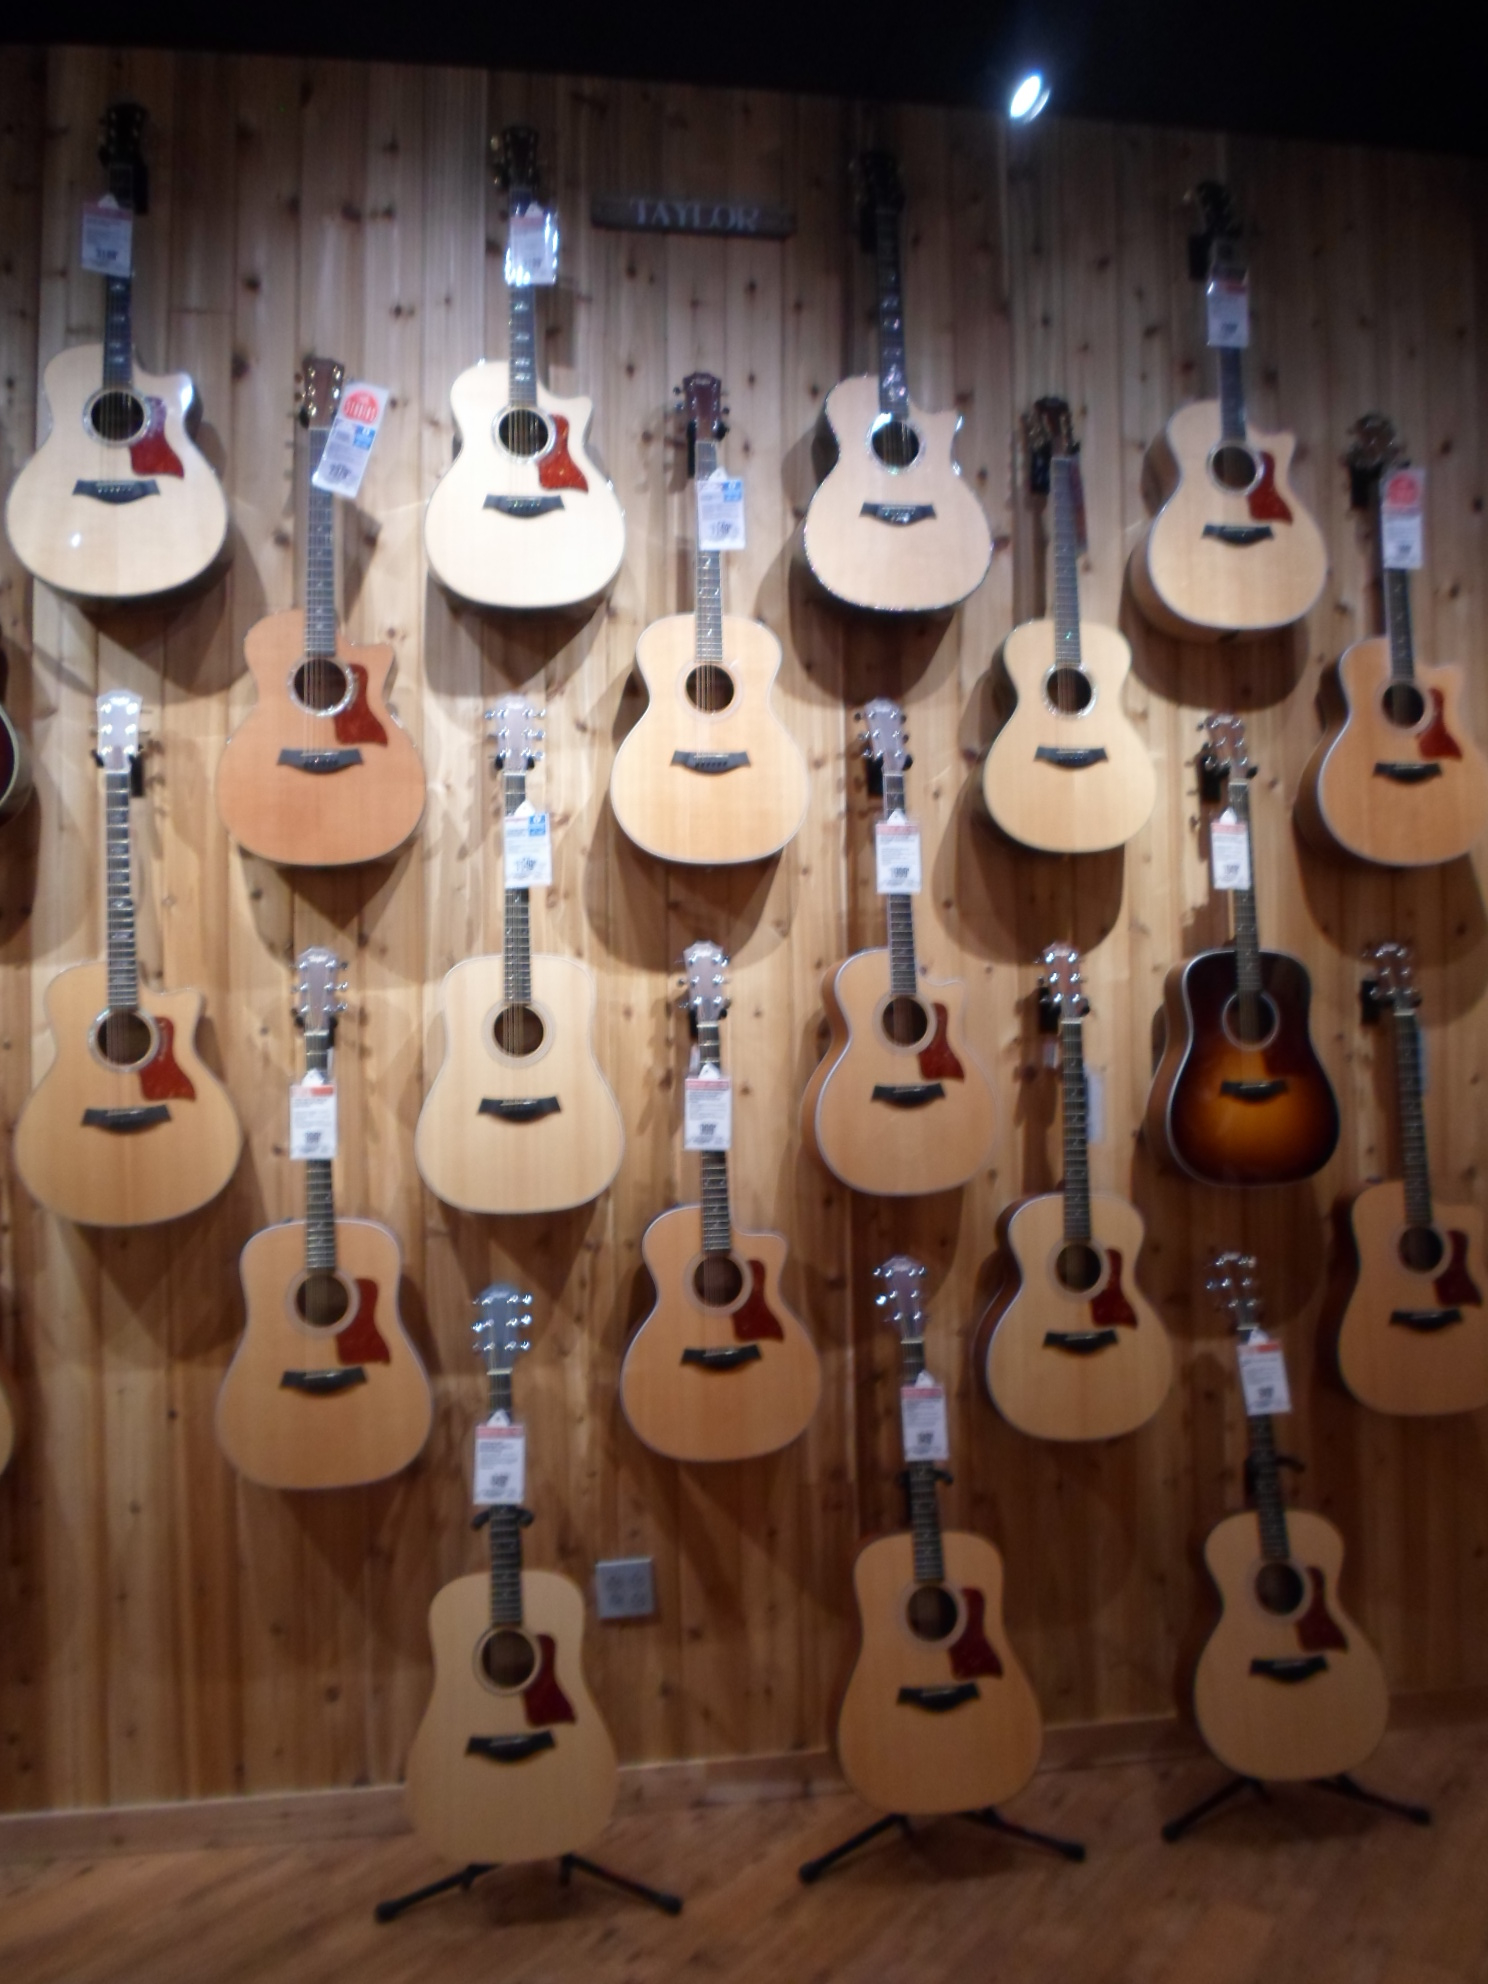 guitar center lessons coupons near me in charlotte nc 28262 8coupons. Black Bedroom Furniture Sets. Home Design Ideas